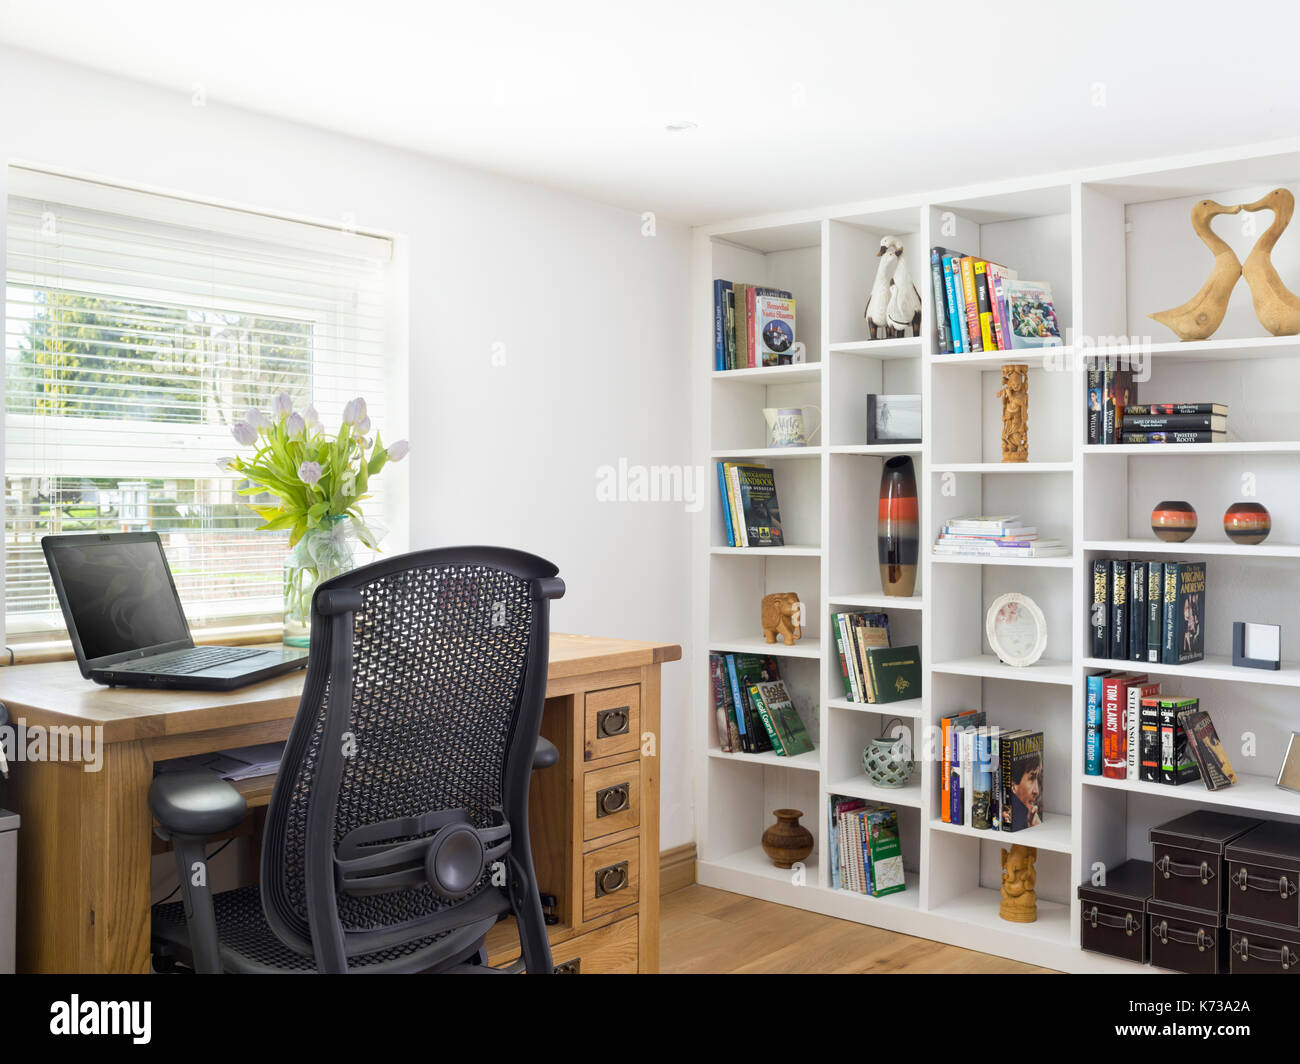 A pleasant home office in a contemporary home with oak desk, laptop and shelving - Stock Image